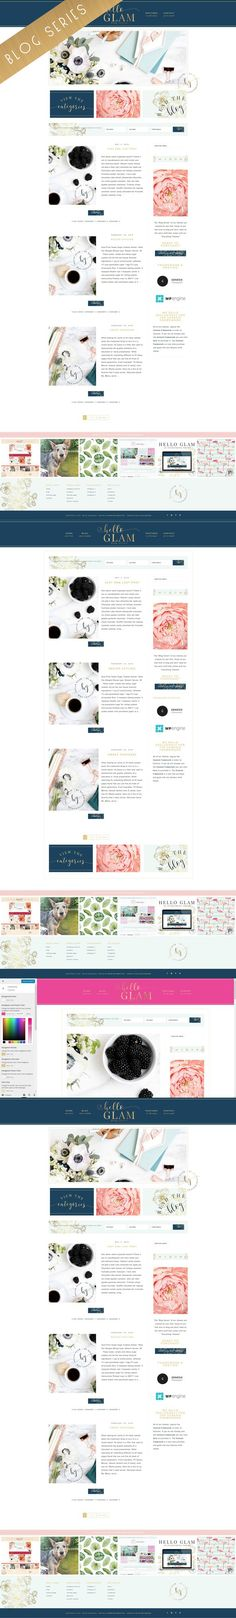 Blog Series Wordpress Genesis Theme. WordPress Blog Themes. $45.00